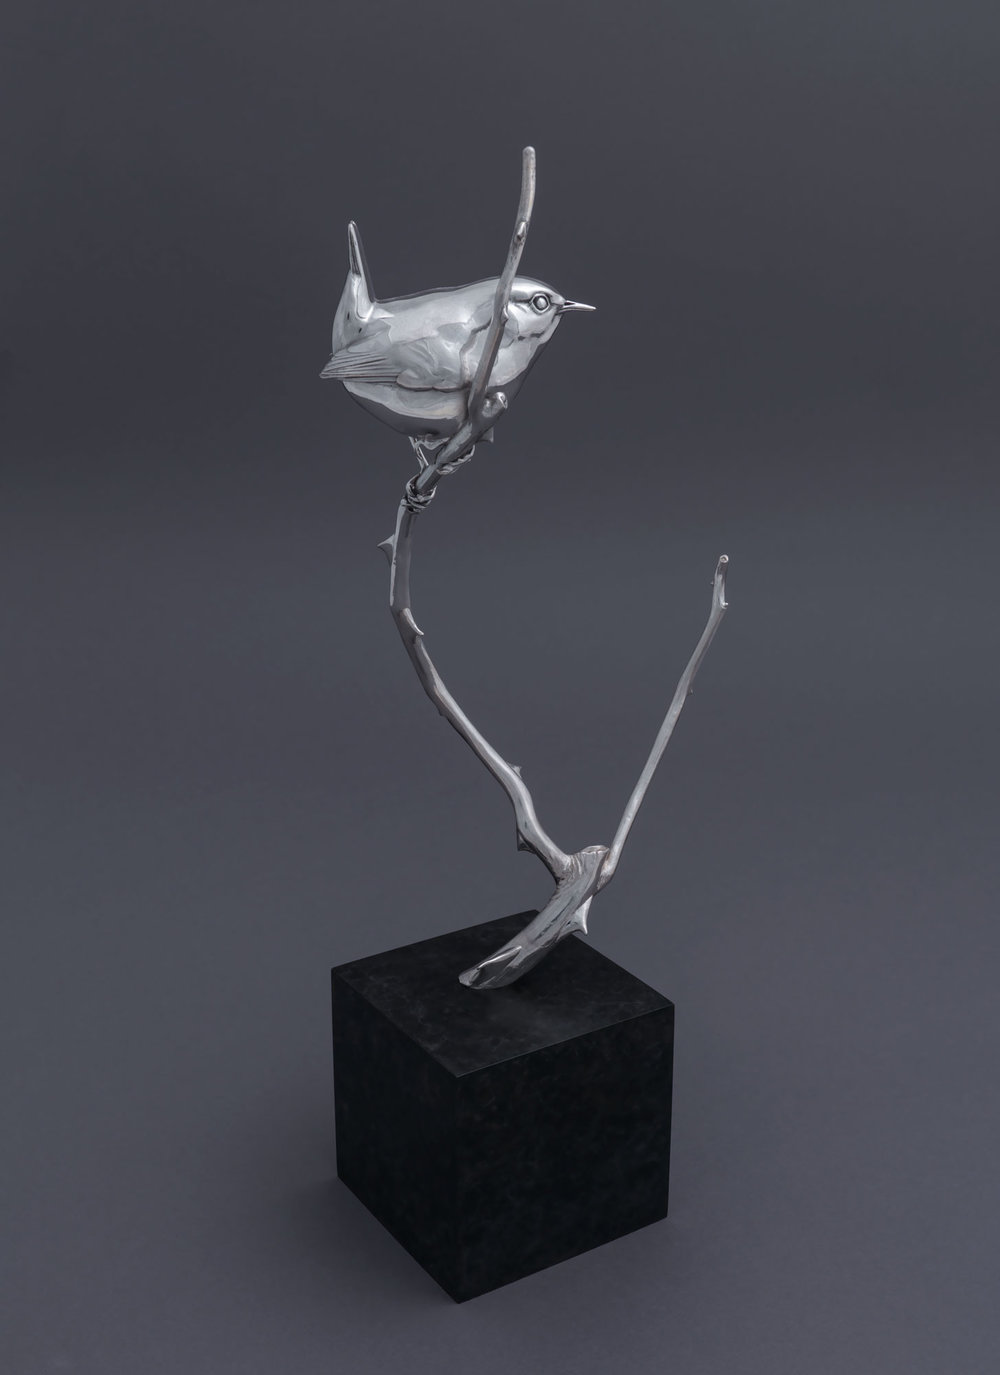 8.1 Silver Wren II by Nick Bibby, Edition of 25, 13 x 5 x 3.5inches (33 x 13 x 9cm).jpg